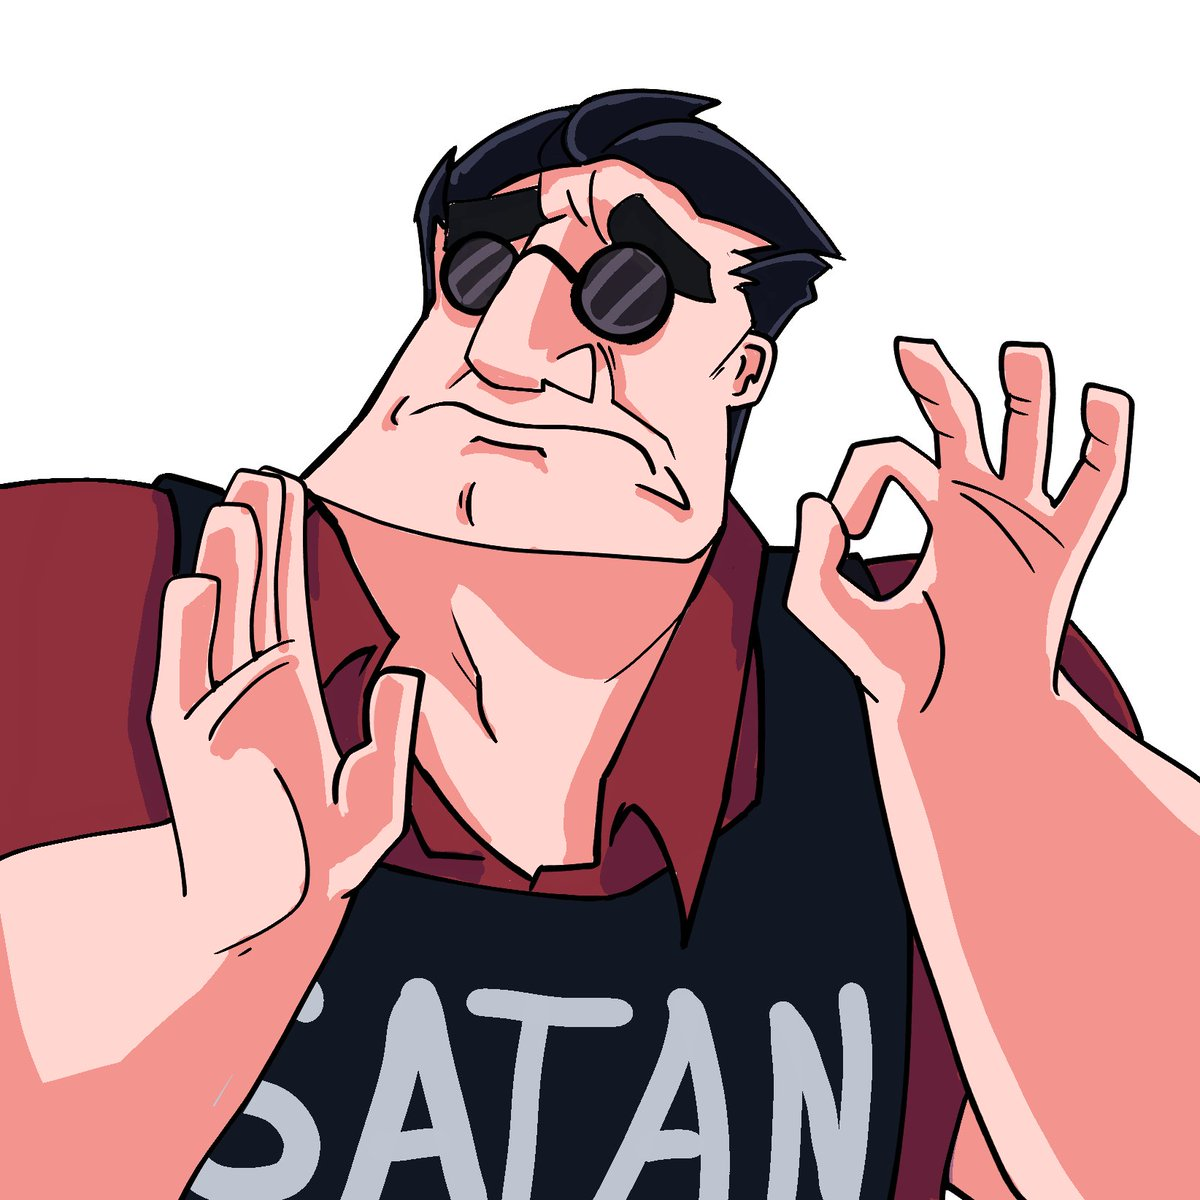 When The Pancakes Is Just Right Pacha Edits When The Sun Hits That Ridge Just Right Know Your Meme Create your own images with the just right pacha meme generator. when the pancakes is just right pacha